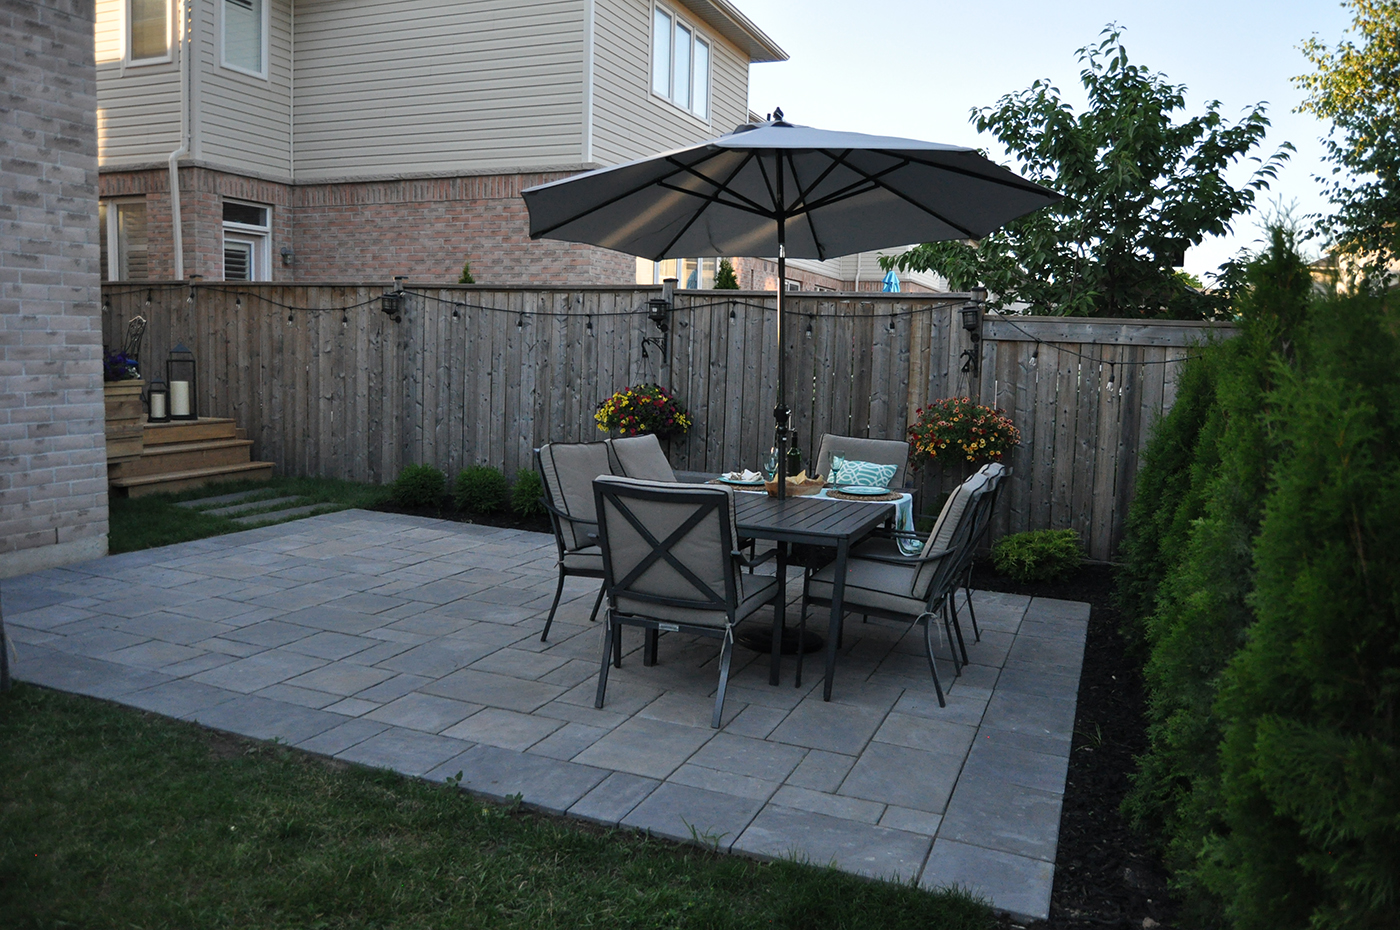 Unilock patio with table and chairs.